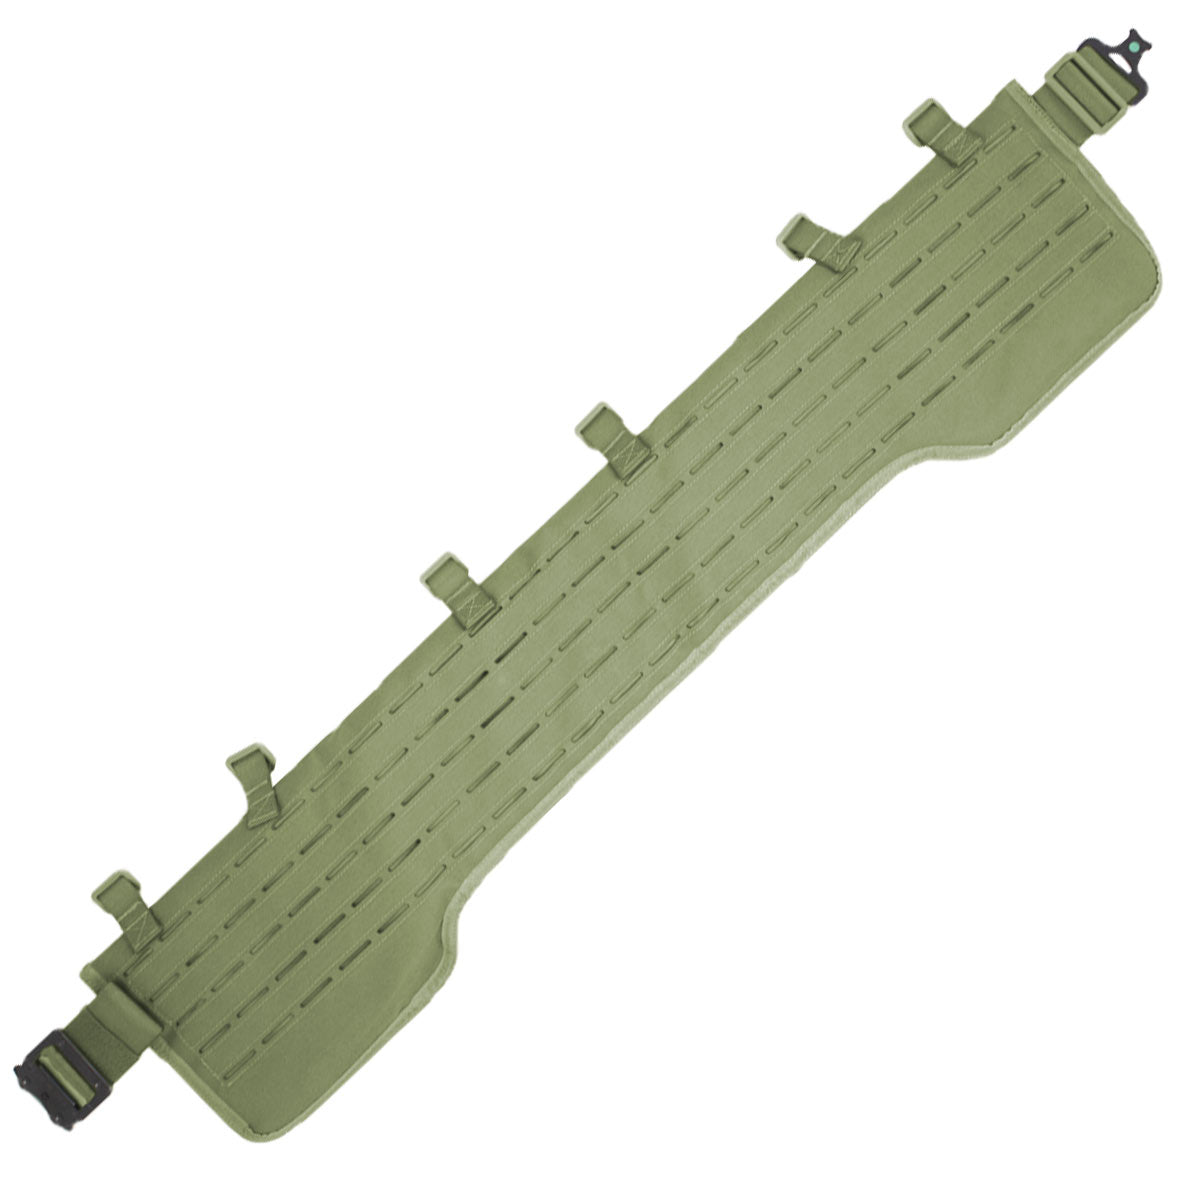 MK3 Lightweight MOLLE Belt Green | Bulldog Tactical Gear